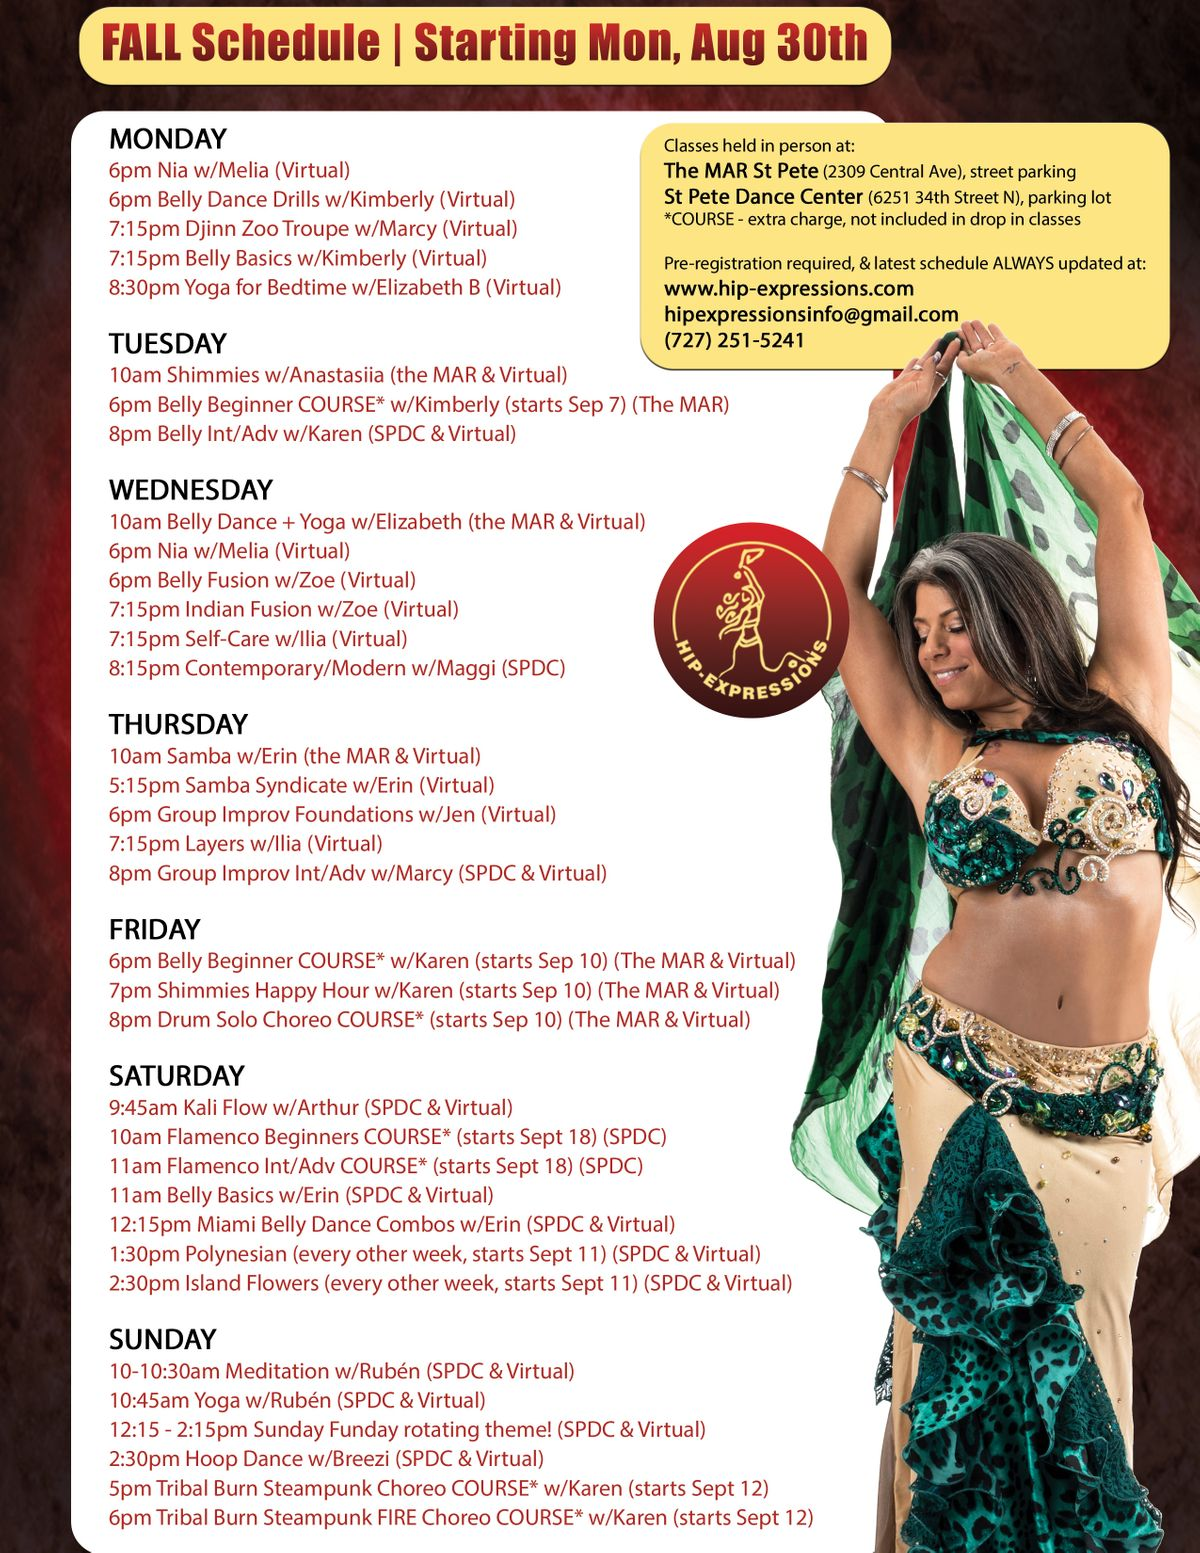 Hip Ex Fall Schedule 2021 8.5 by 11 Full Color WEB.jpg